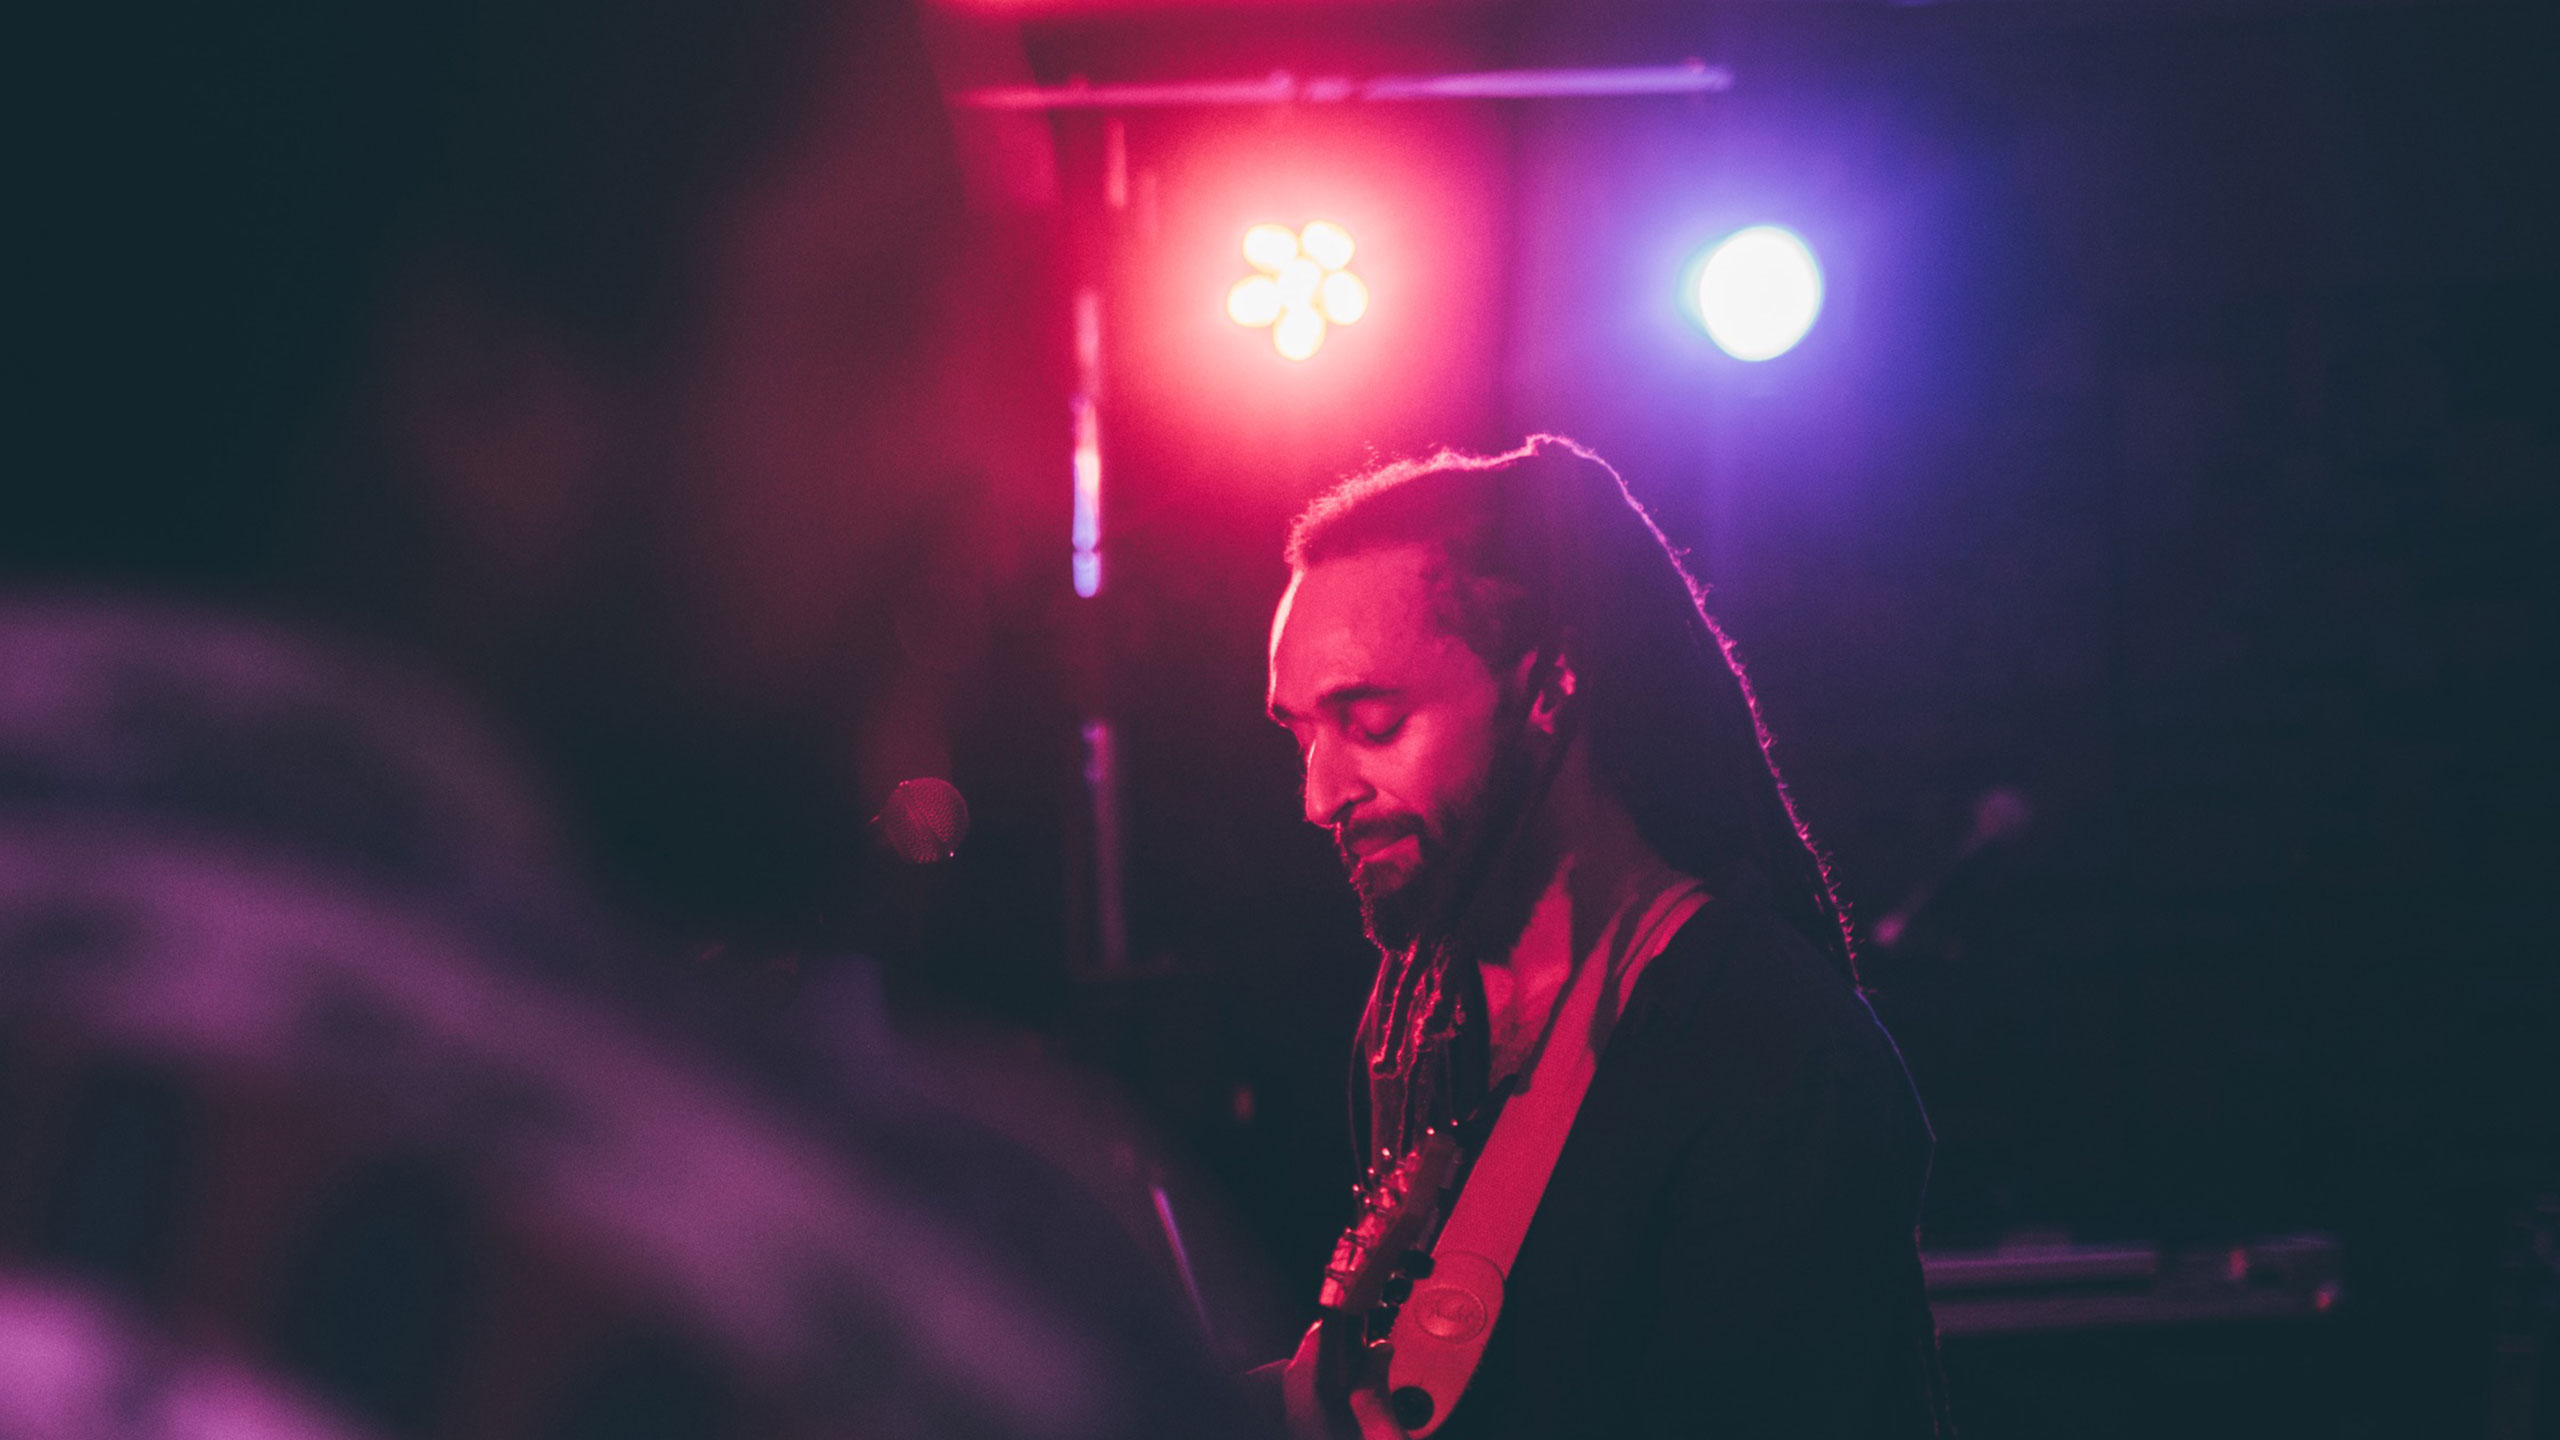 Andrew Ashong, with long dreadlocks and a dark shirt, looks down at his guitar on stage at PRS for Music Presents